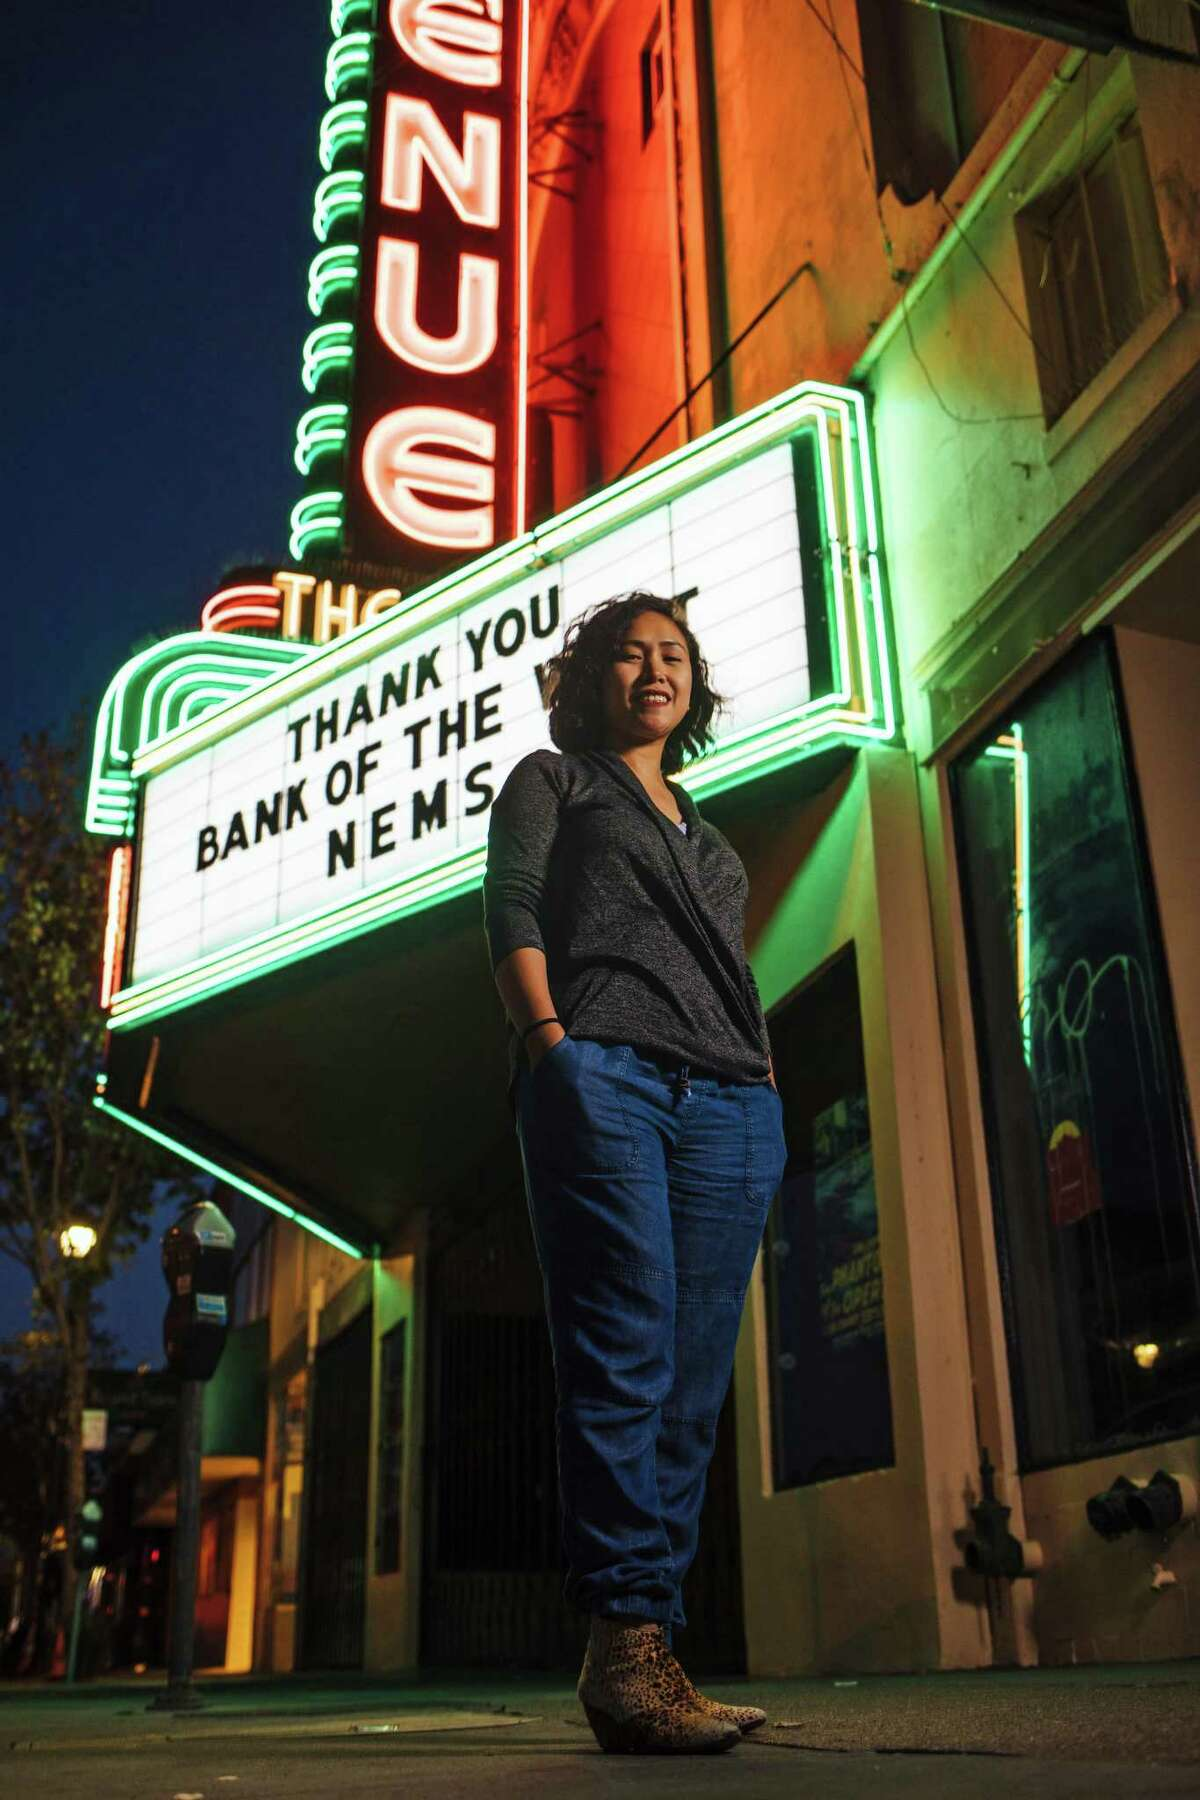 Rica Sunga-Kwan, owner of the Churn Urban Creamery, photographed outside the Avenue Theater in San Francisco, Calif. Thursday, September 14, 2017.